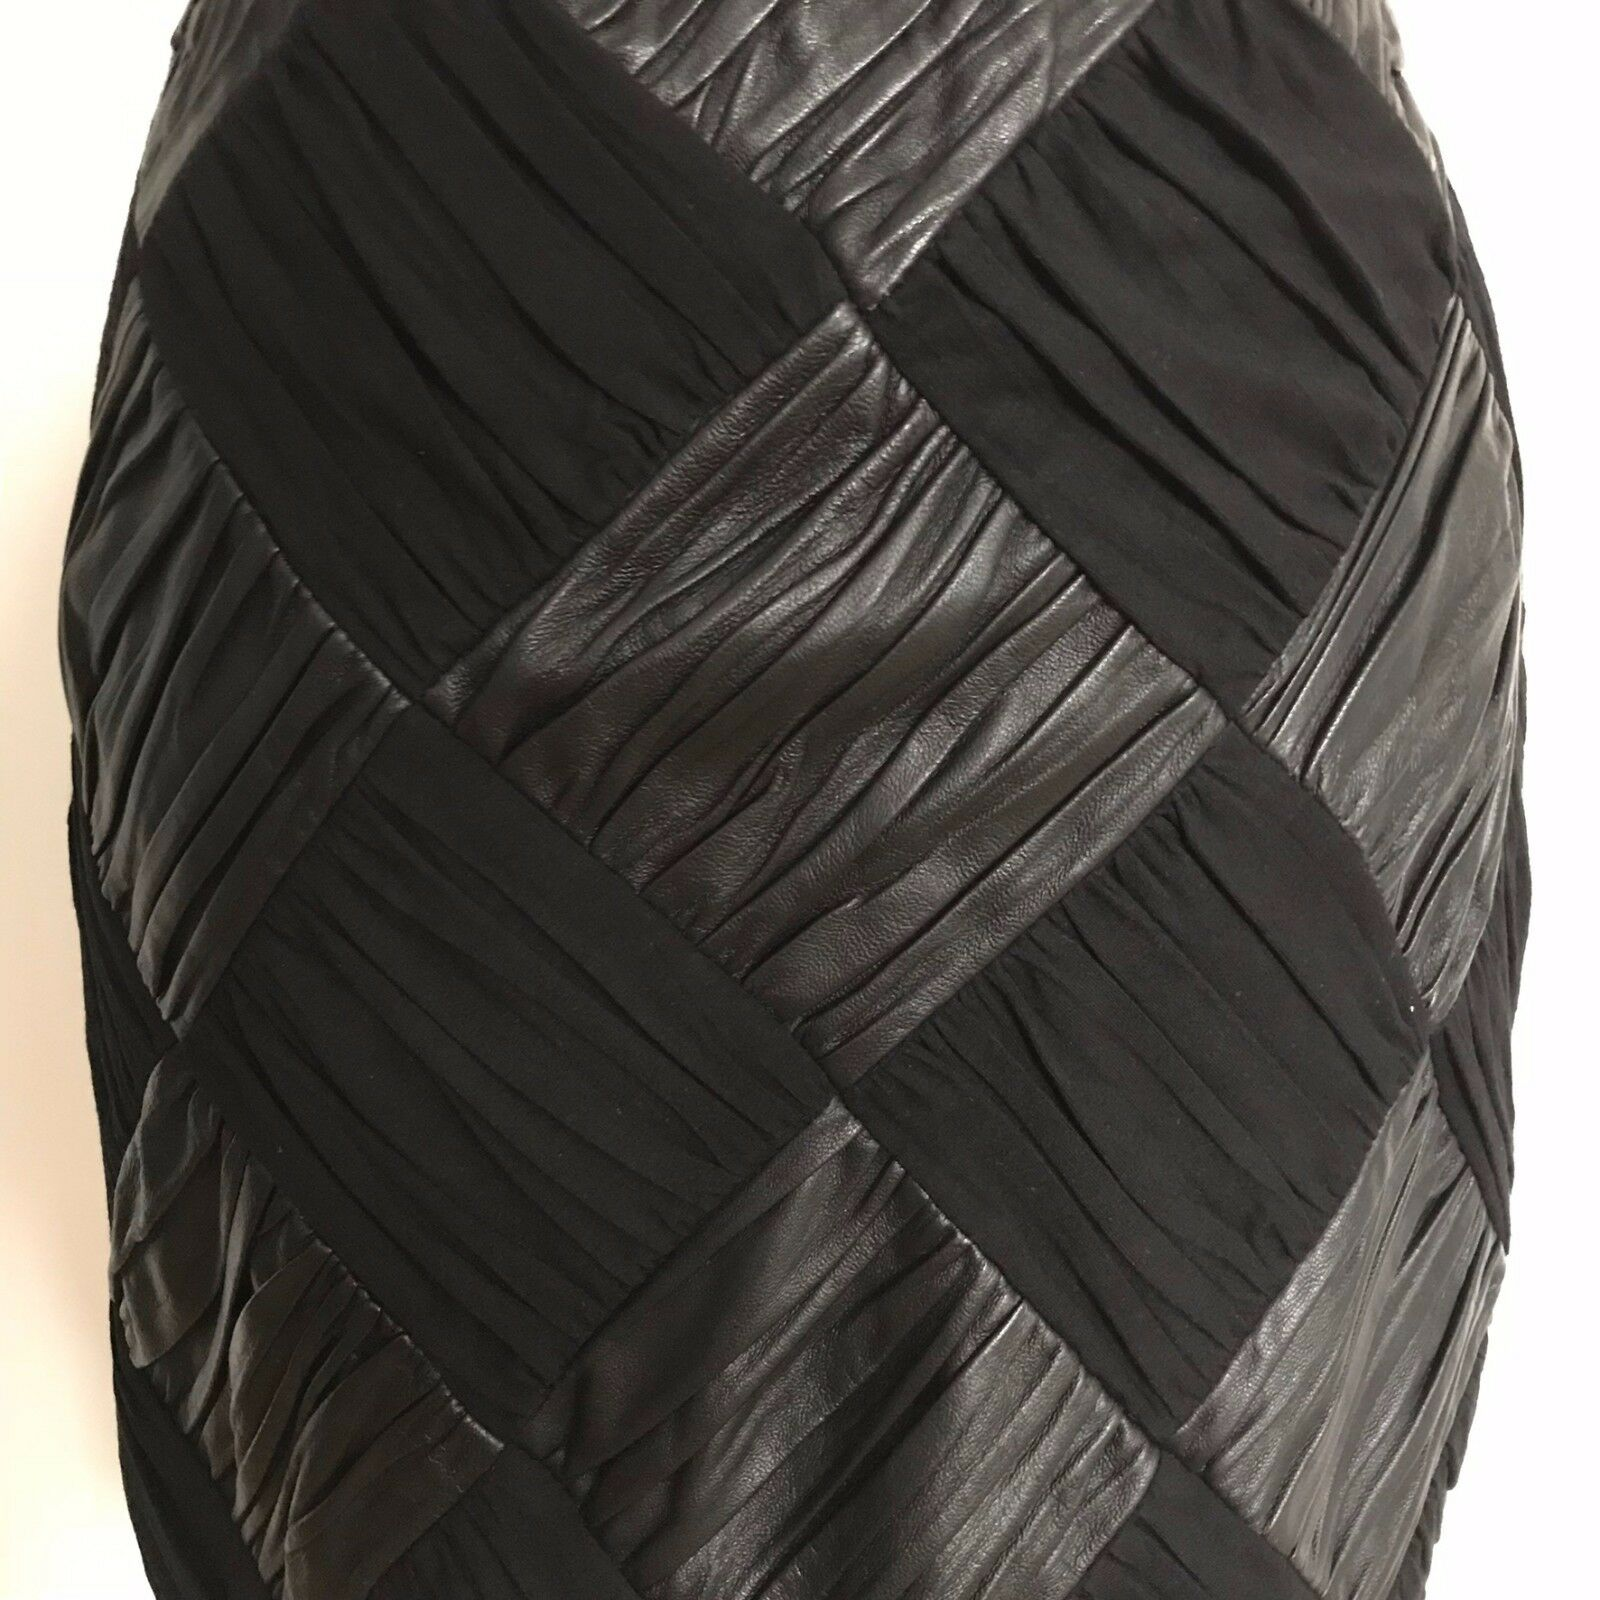 Harrywho Leather Skirt Size 8